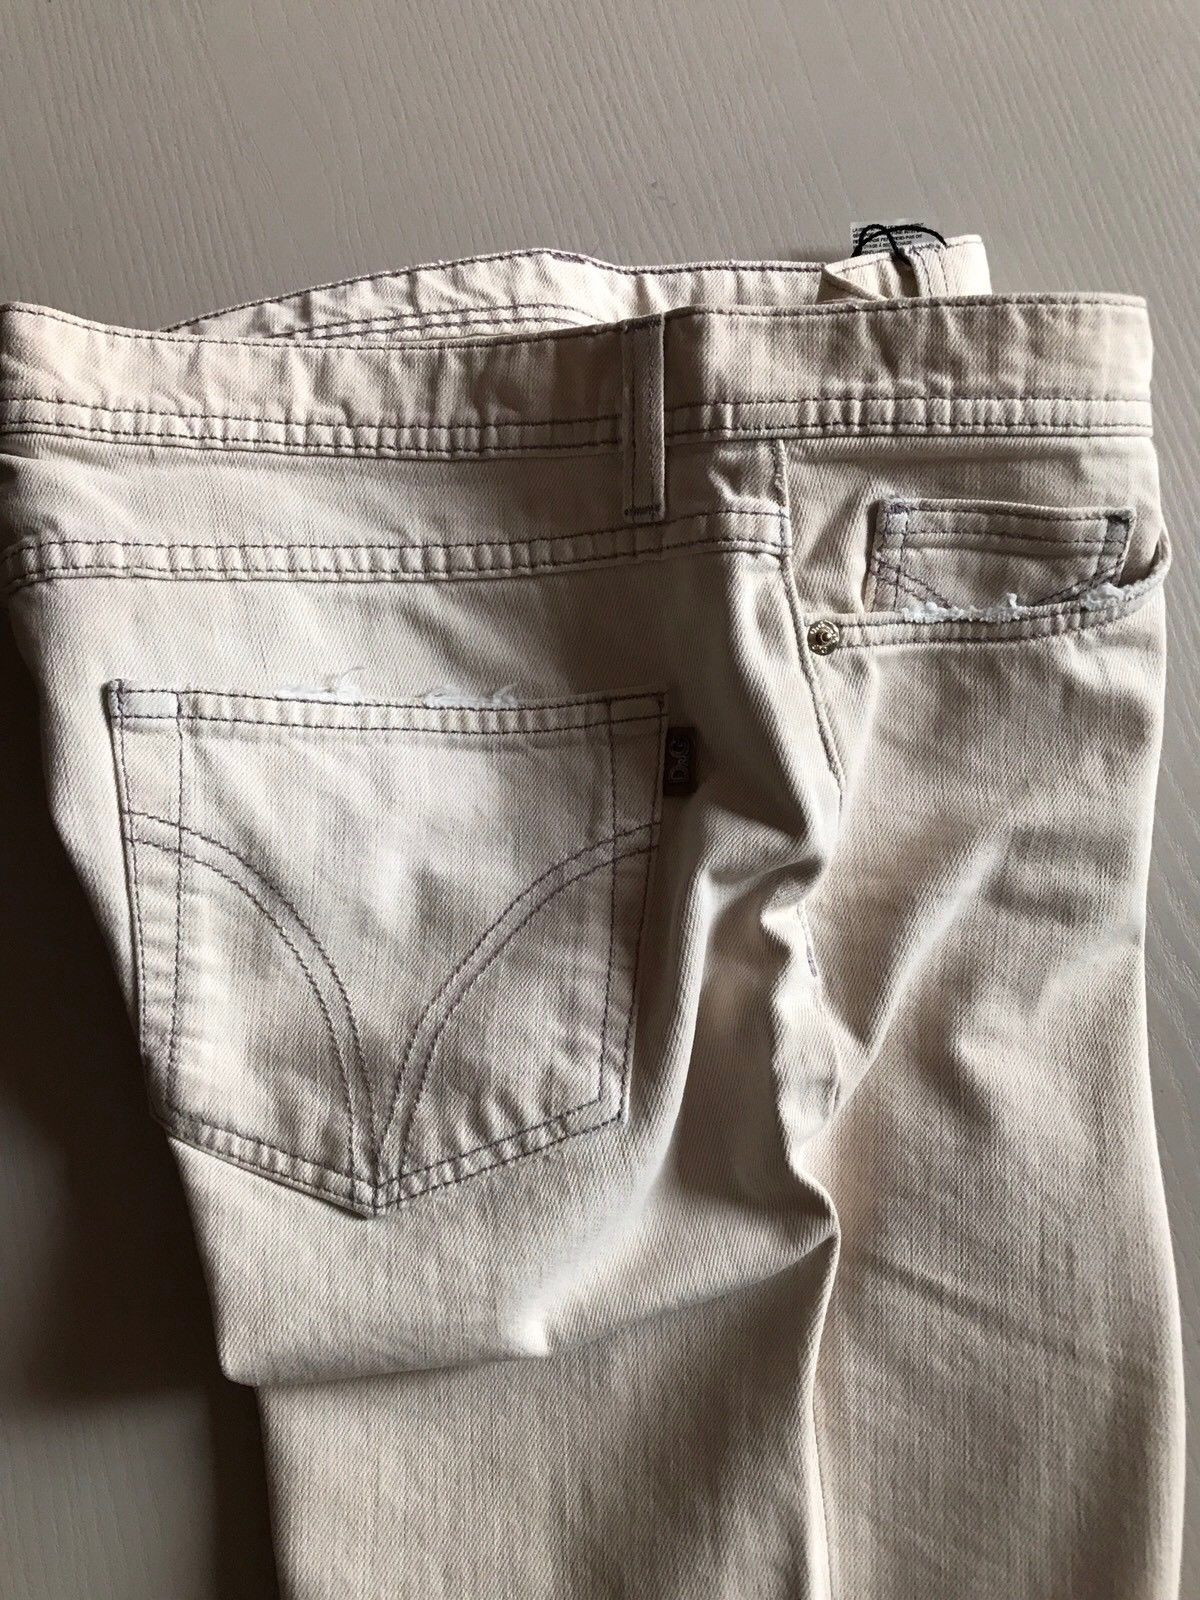 New $475 D&G Women's Pants Jeans Cream Size 31 Made In Italy